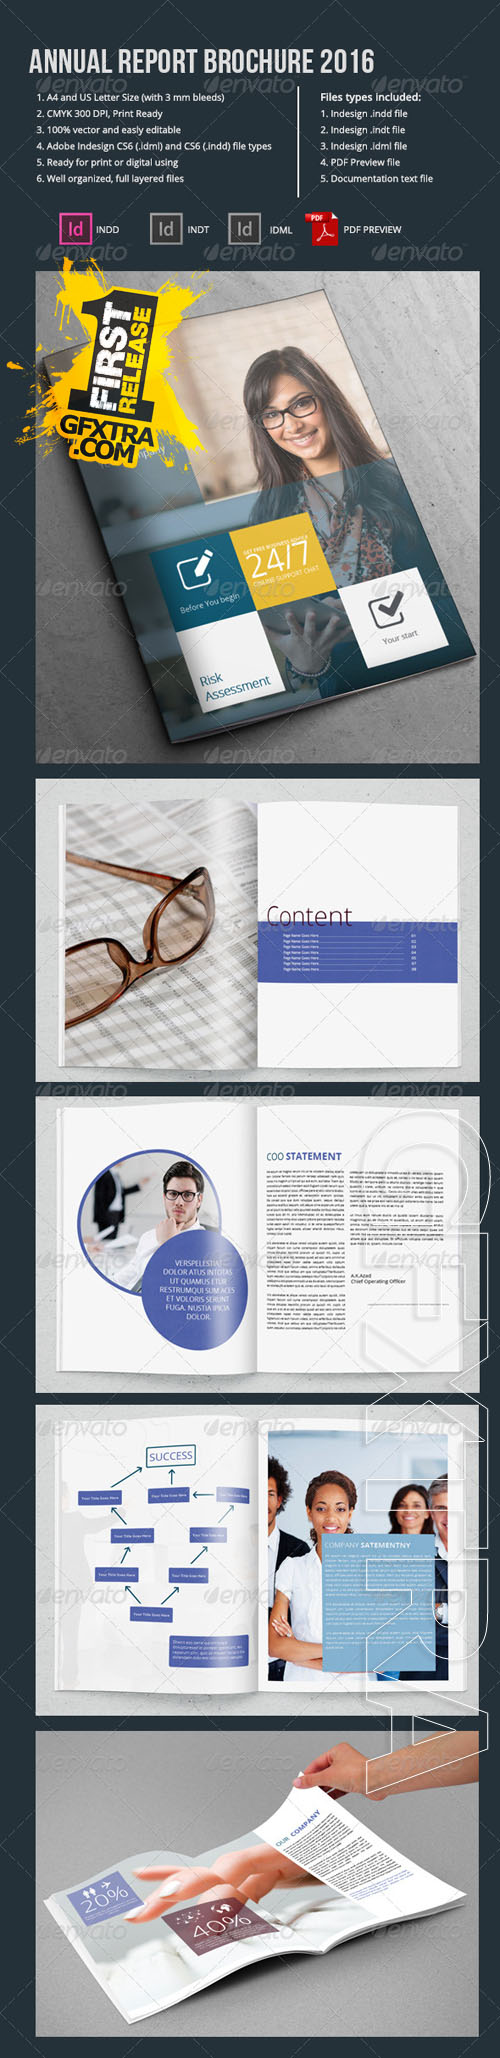 GraphicRiver - Annual Report Brochure 2016 6767933